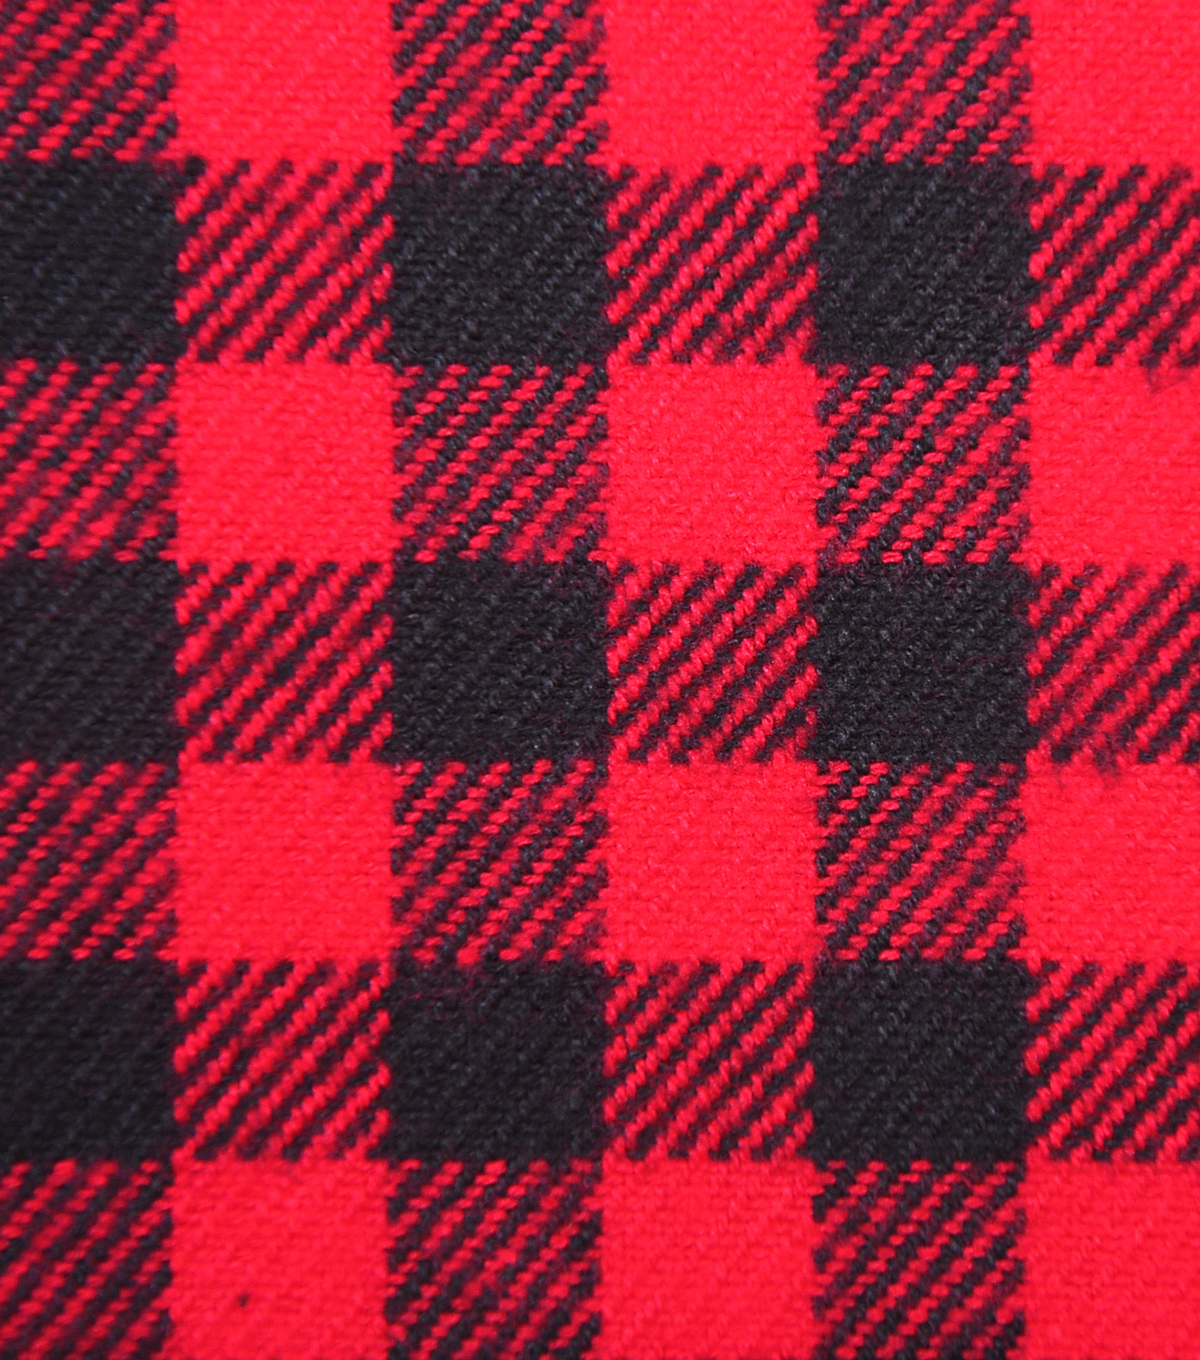 Plaiditudes Brushed Cotton Apparel Fabric -Red & Black Gingham Plaid